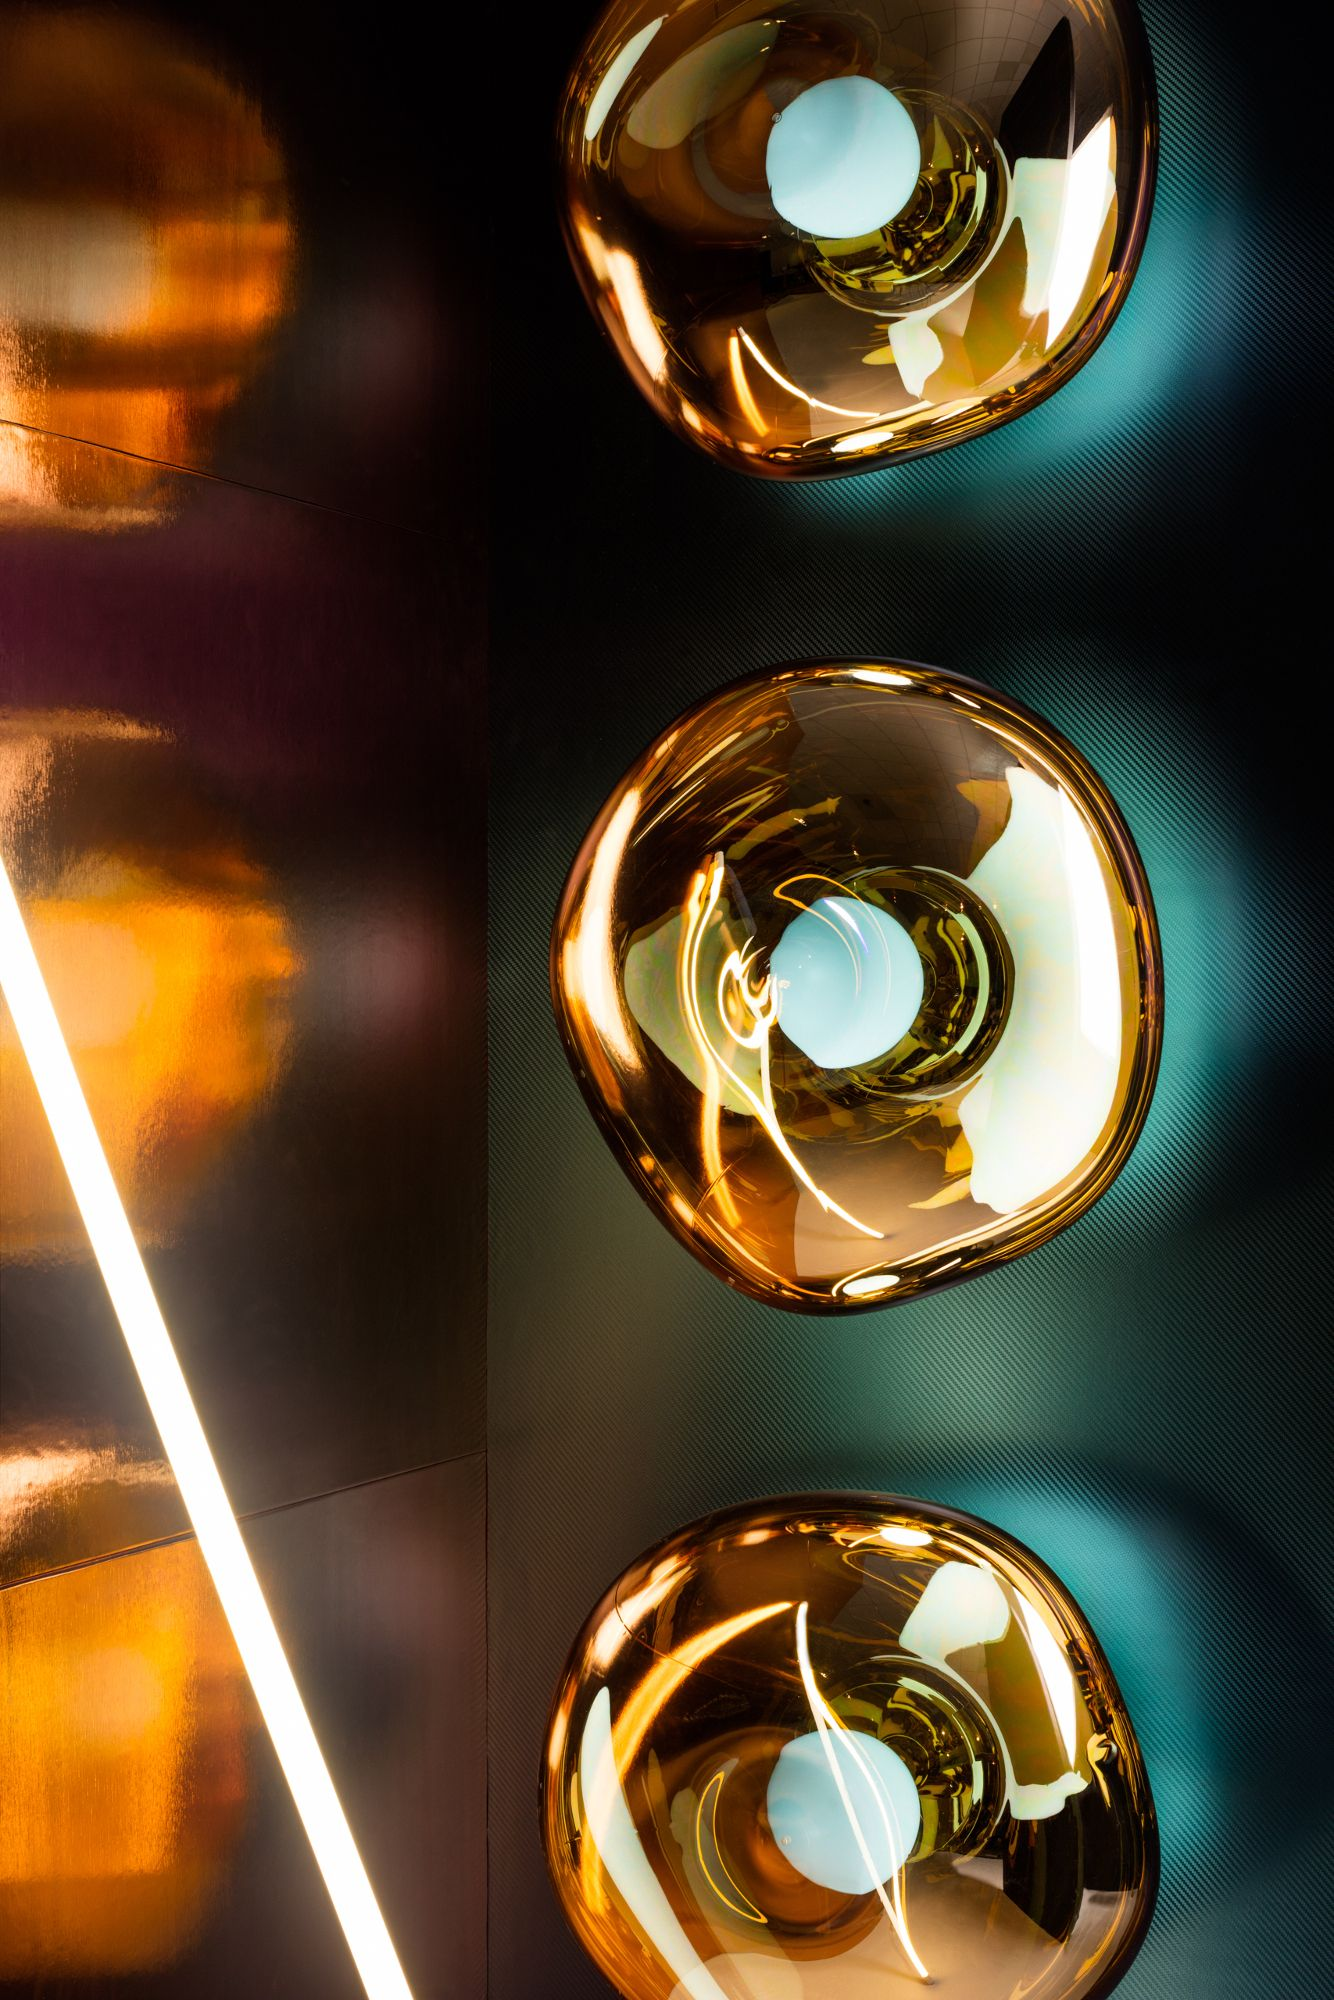 Melt Wall Ceiling Light By Tom Dixon Mess02smul In 2020 Tom Dixon Lighting Wall Ceiling Lights Tom Dixon